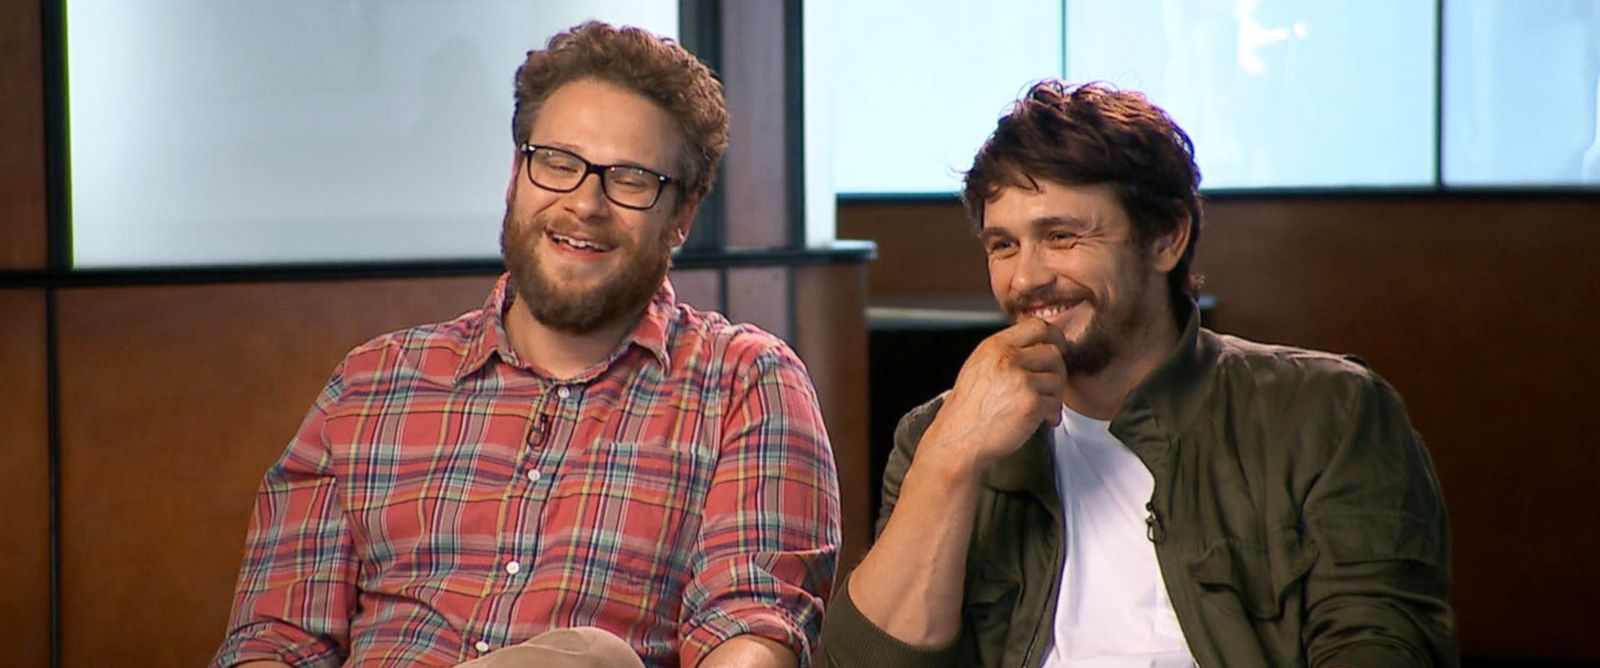 PHOTO: Nightline sits down with Seth Rogen and James Franco to discuss their new movie.